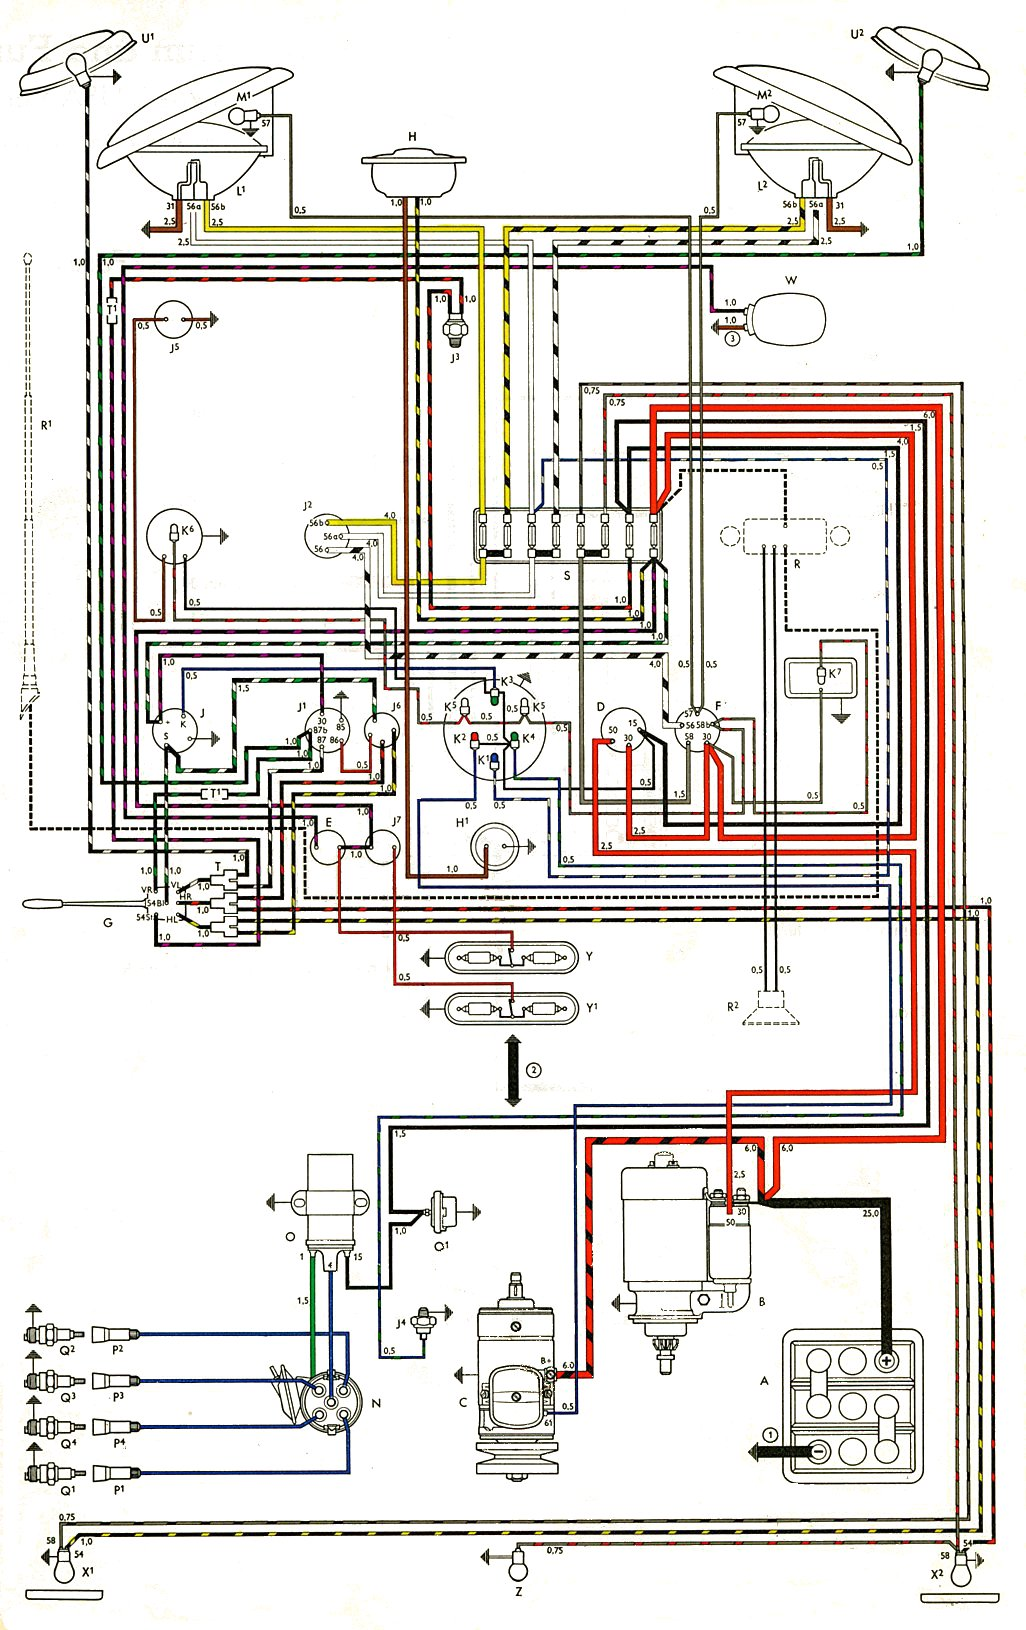 69 Vw Fuse Box Wiring Library Baja Diagram 1965 Beetle Images Gallery